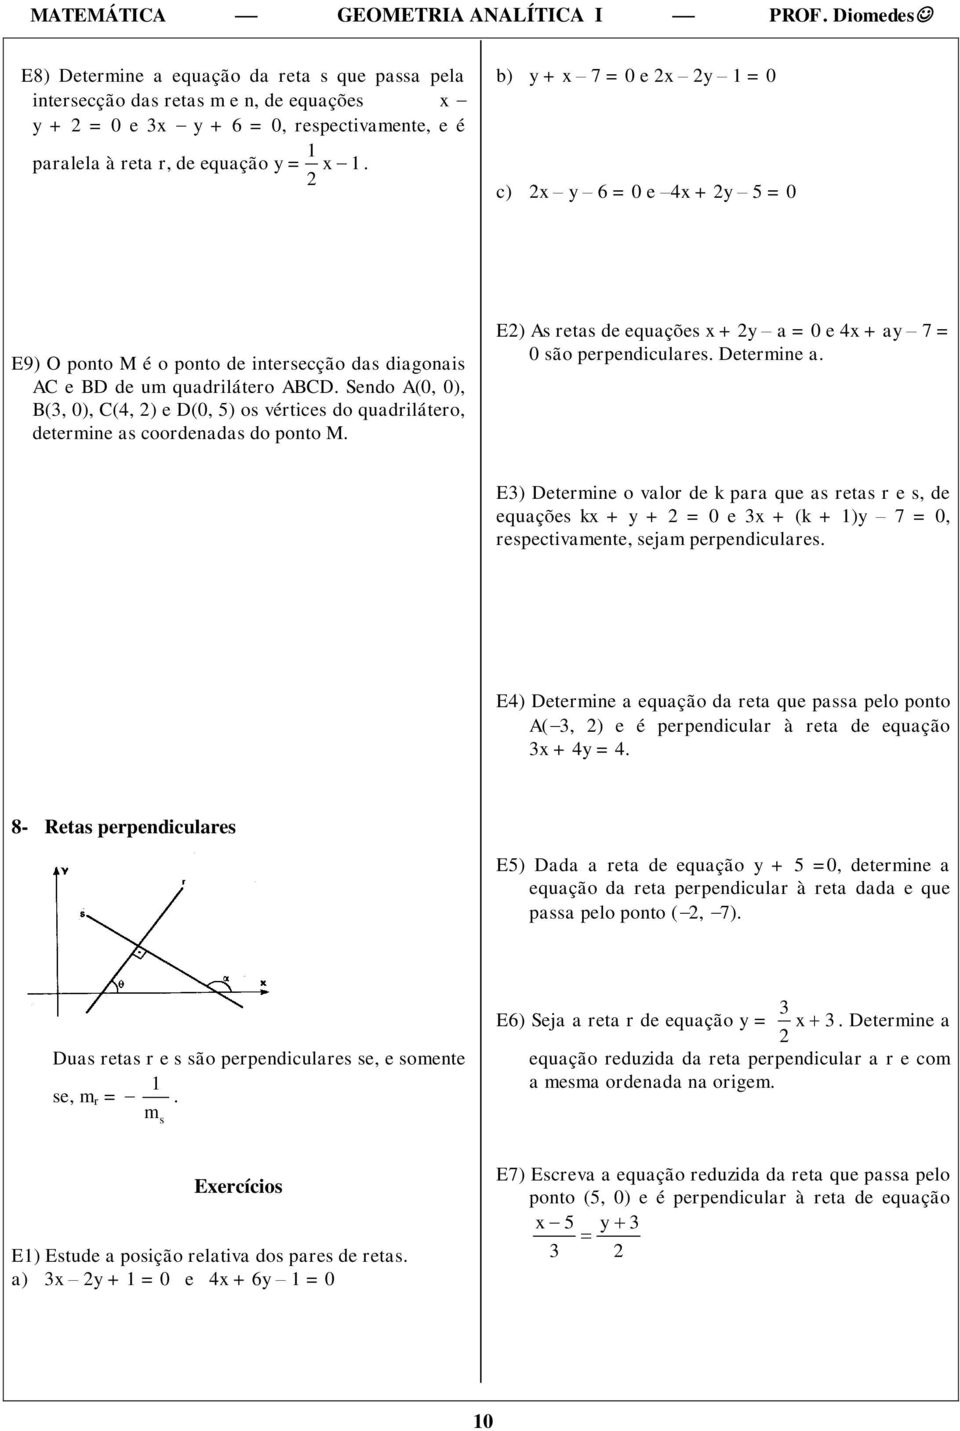 Sendo A(0, 0), B(, 0), C(4, ) e D(0, 5) os vértices do quadrilátero, determine as coordenadas do ponto M. E) As retas de equações + a = 0 e 4 + a 7 = 0 são perpendiculares. Determine a.